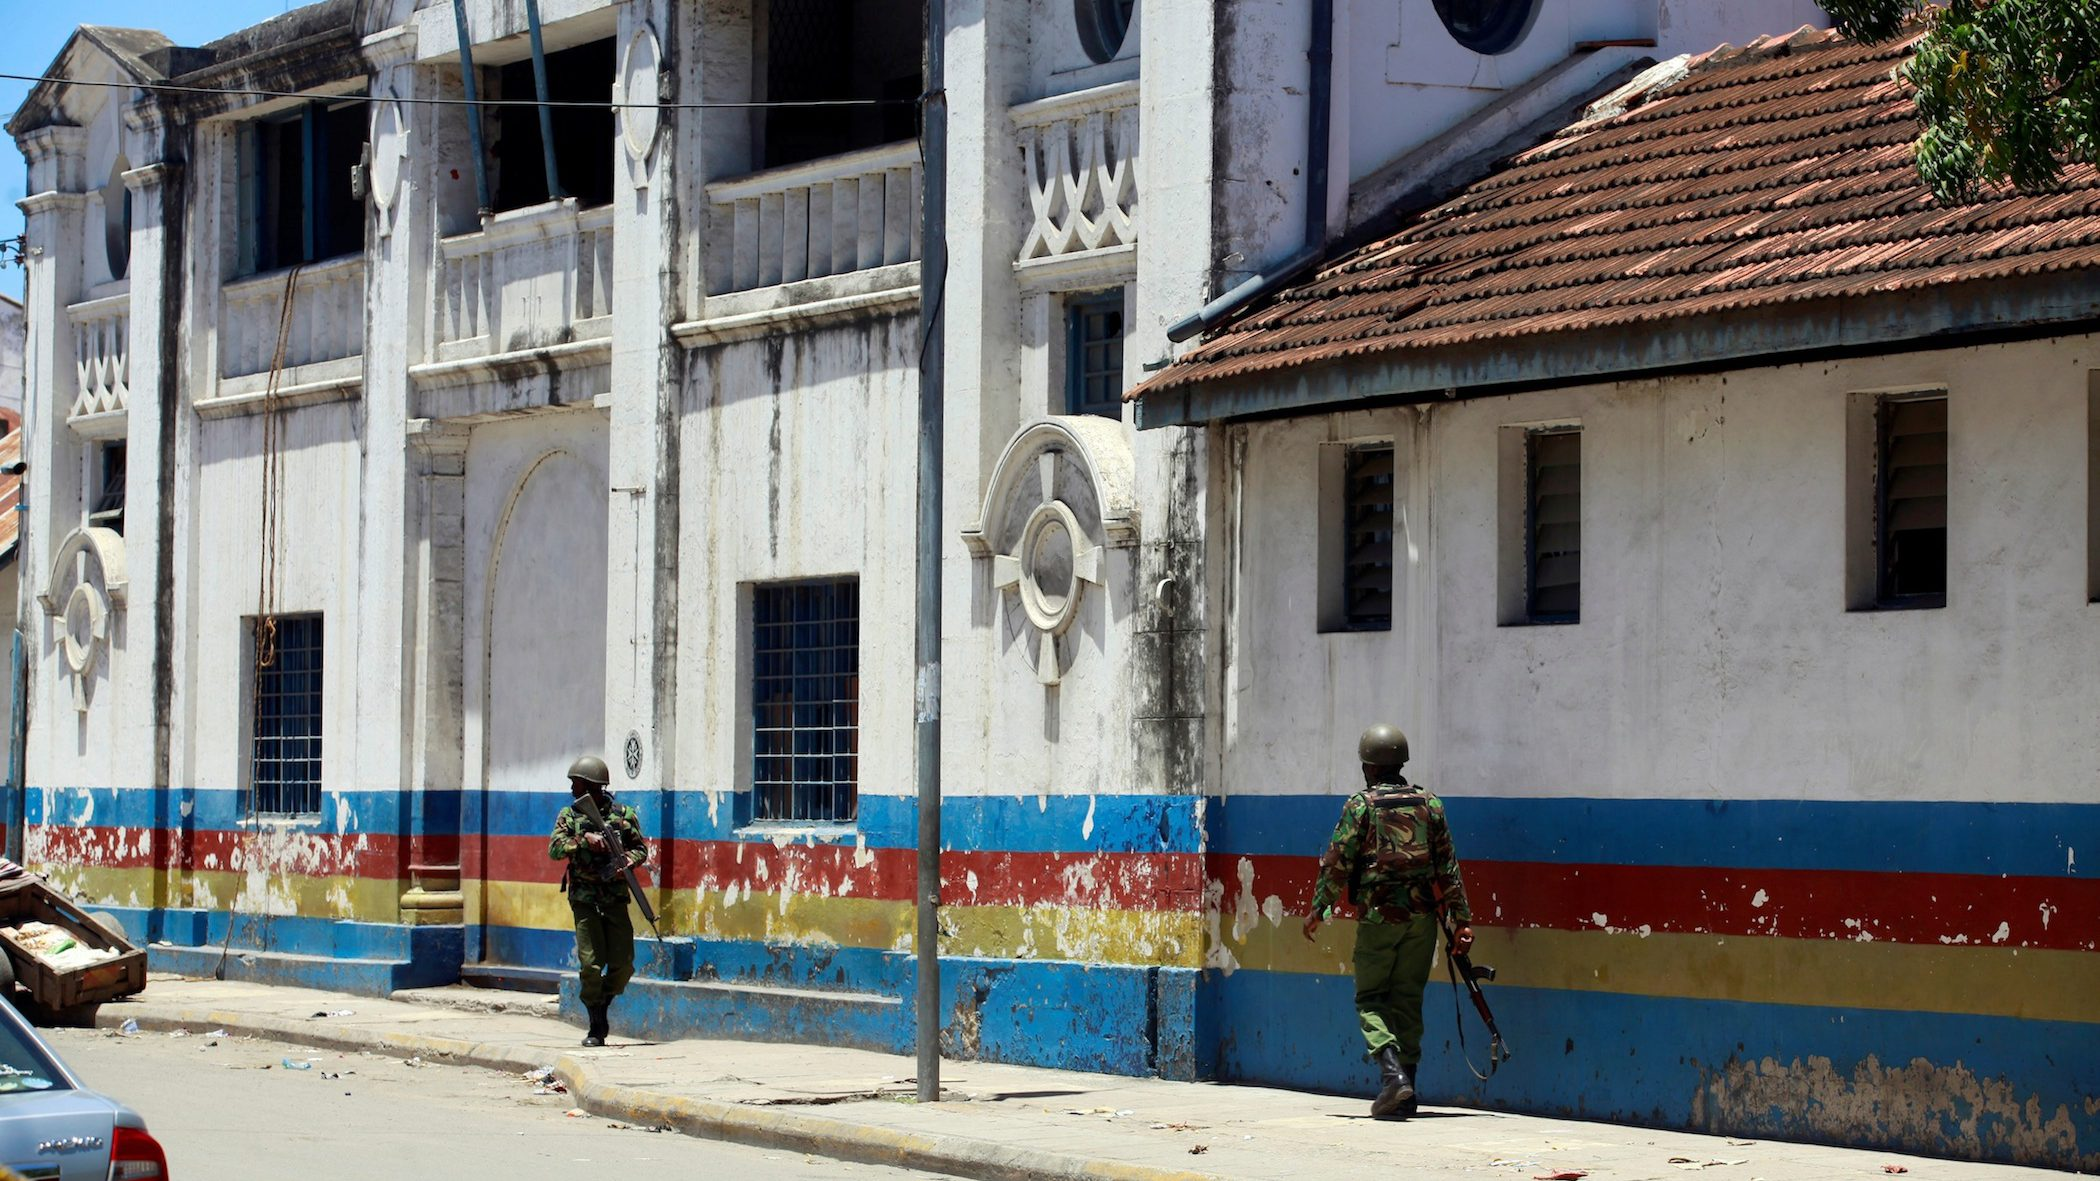 Armed policemen walk outside the central police station after an attack, in the coastal city of Mombasa, Kenya, September 11, 2016.